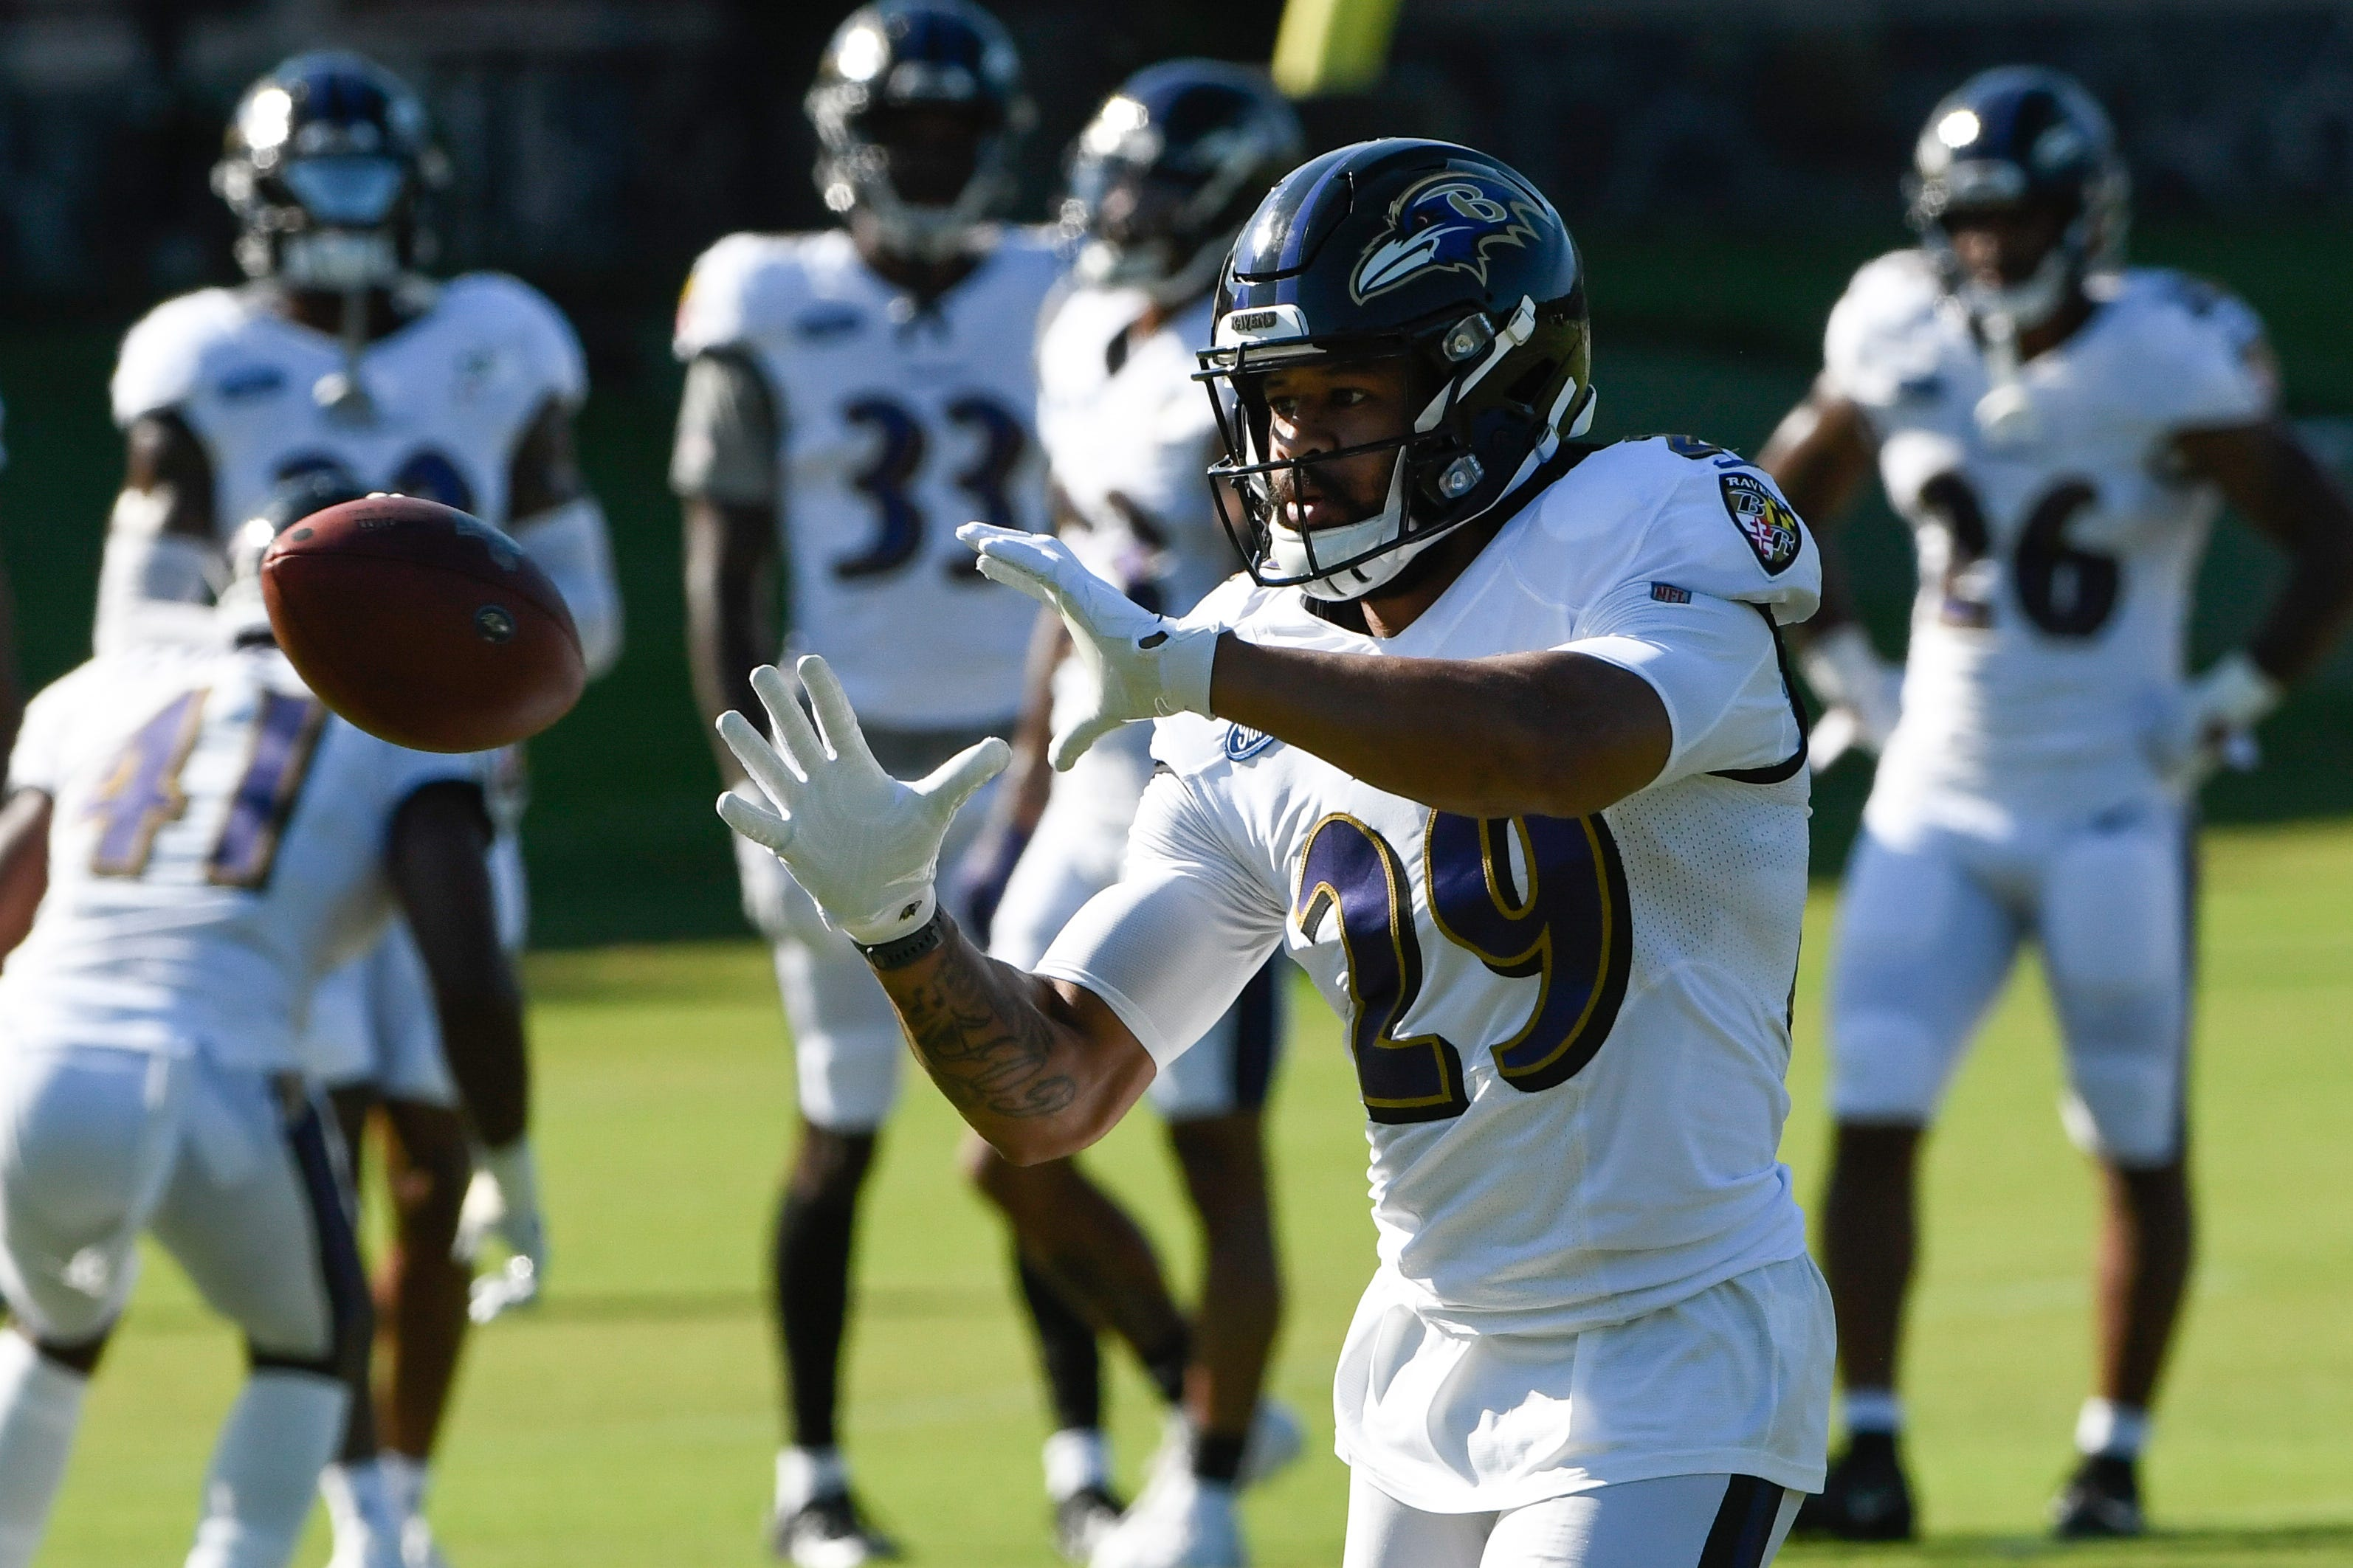 Earl Thomas cut by Ravens after fight in practice with teammate